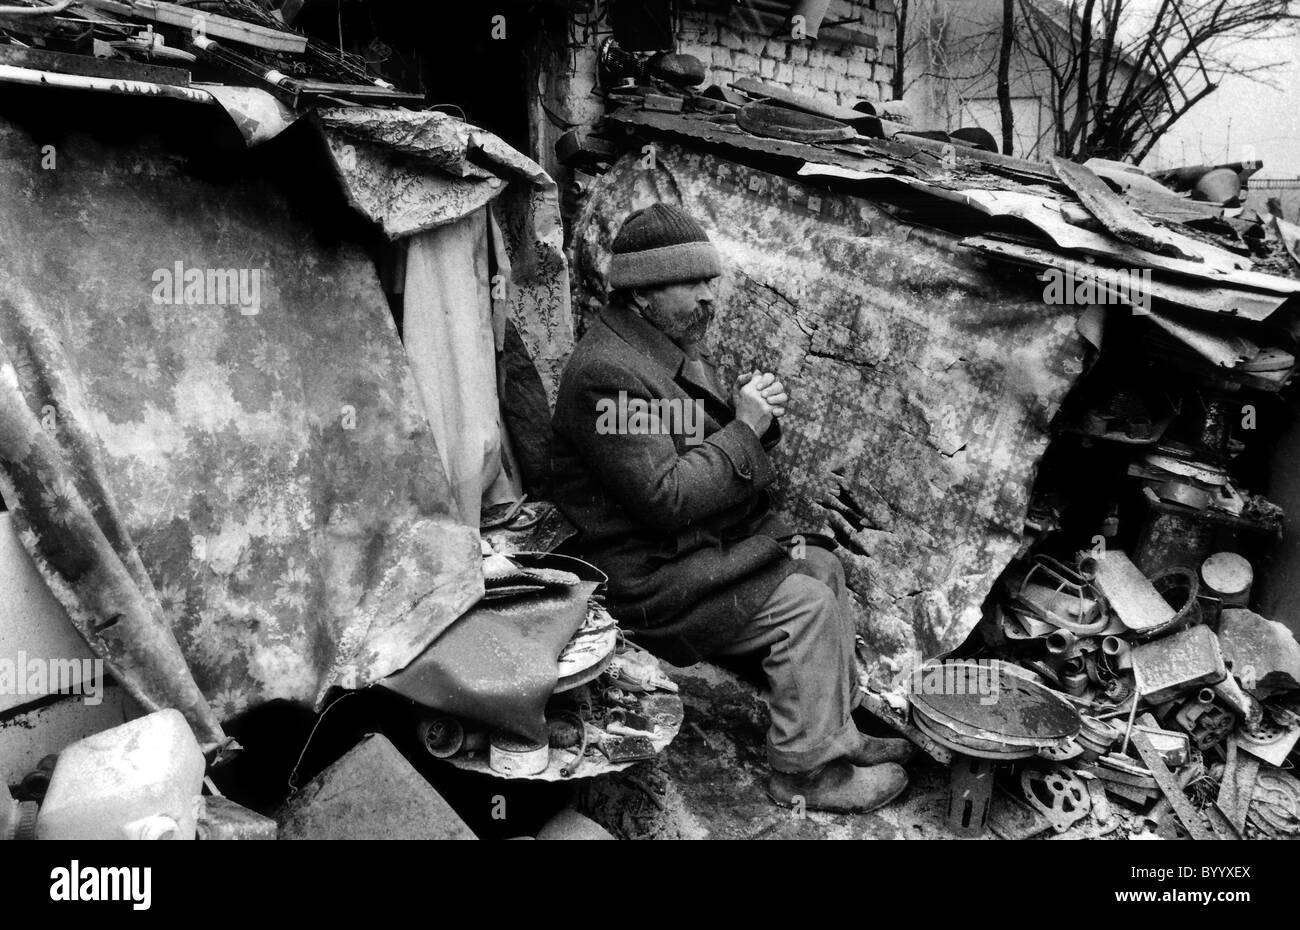 Man sitting in remains of his home destroyed in  Bosnian herzegovina war - Stock Image